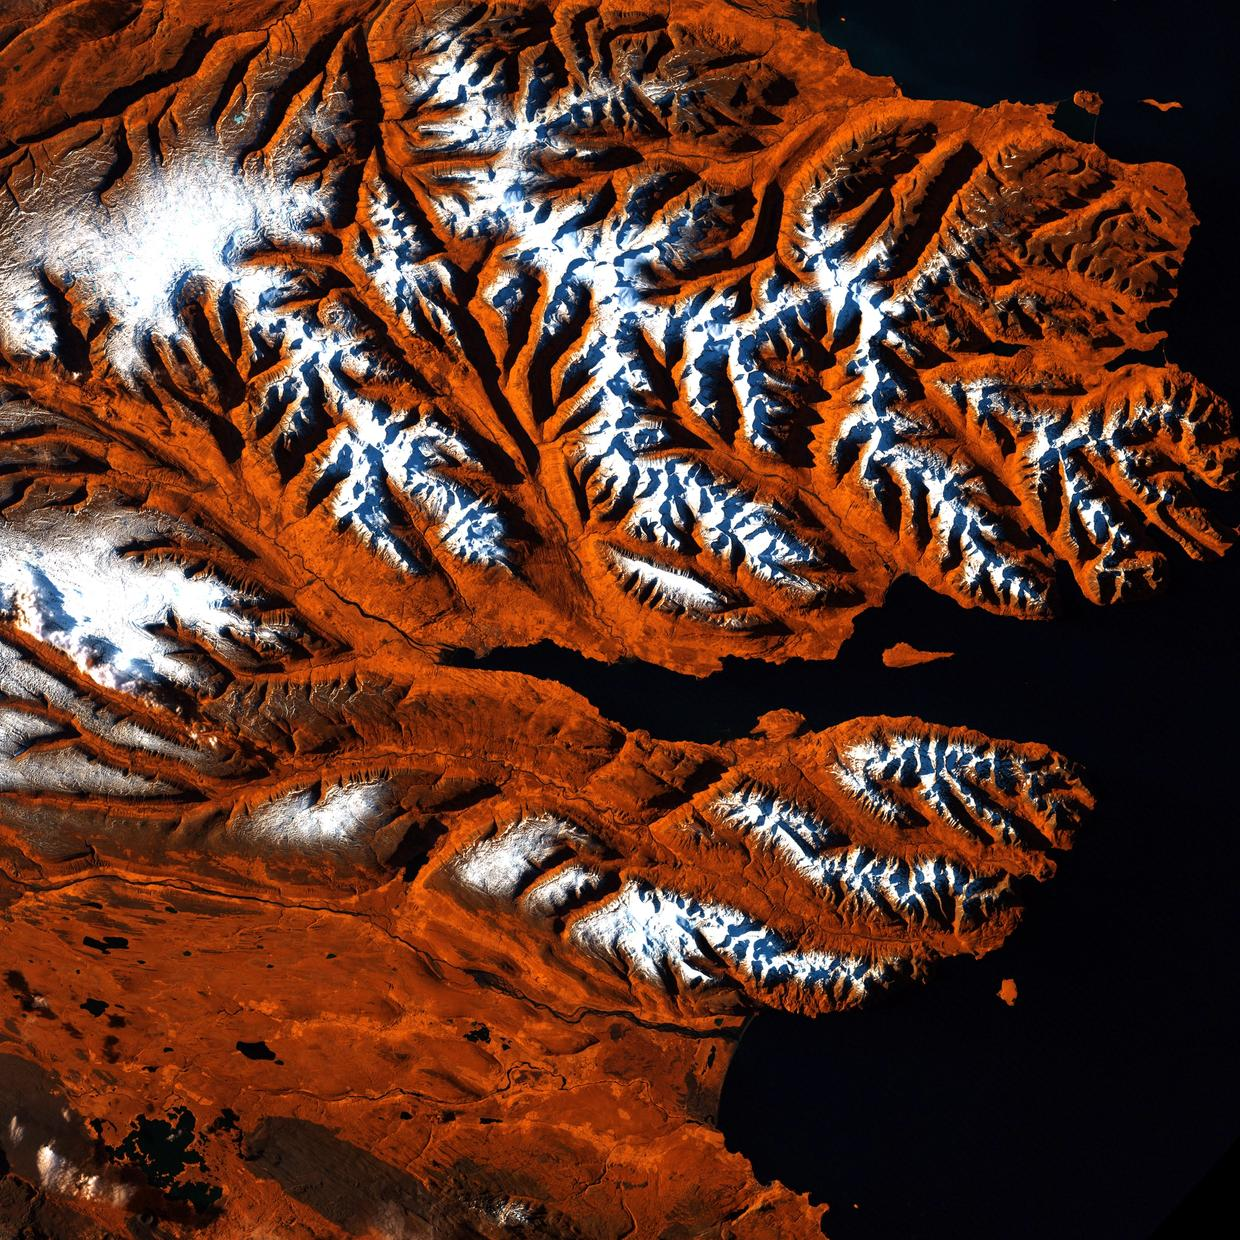 This stretch of Iceland's northern coast resembles a tiger's head complete with stripes of orange, black, and white. The tiger's mouth is the great Eyjafjorour, a deep fjord that juts into the mainland between steep mountains. The name means